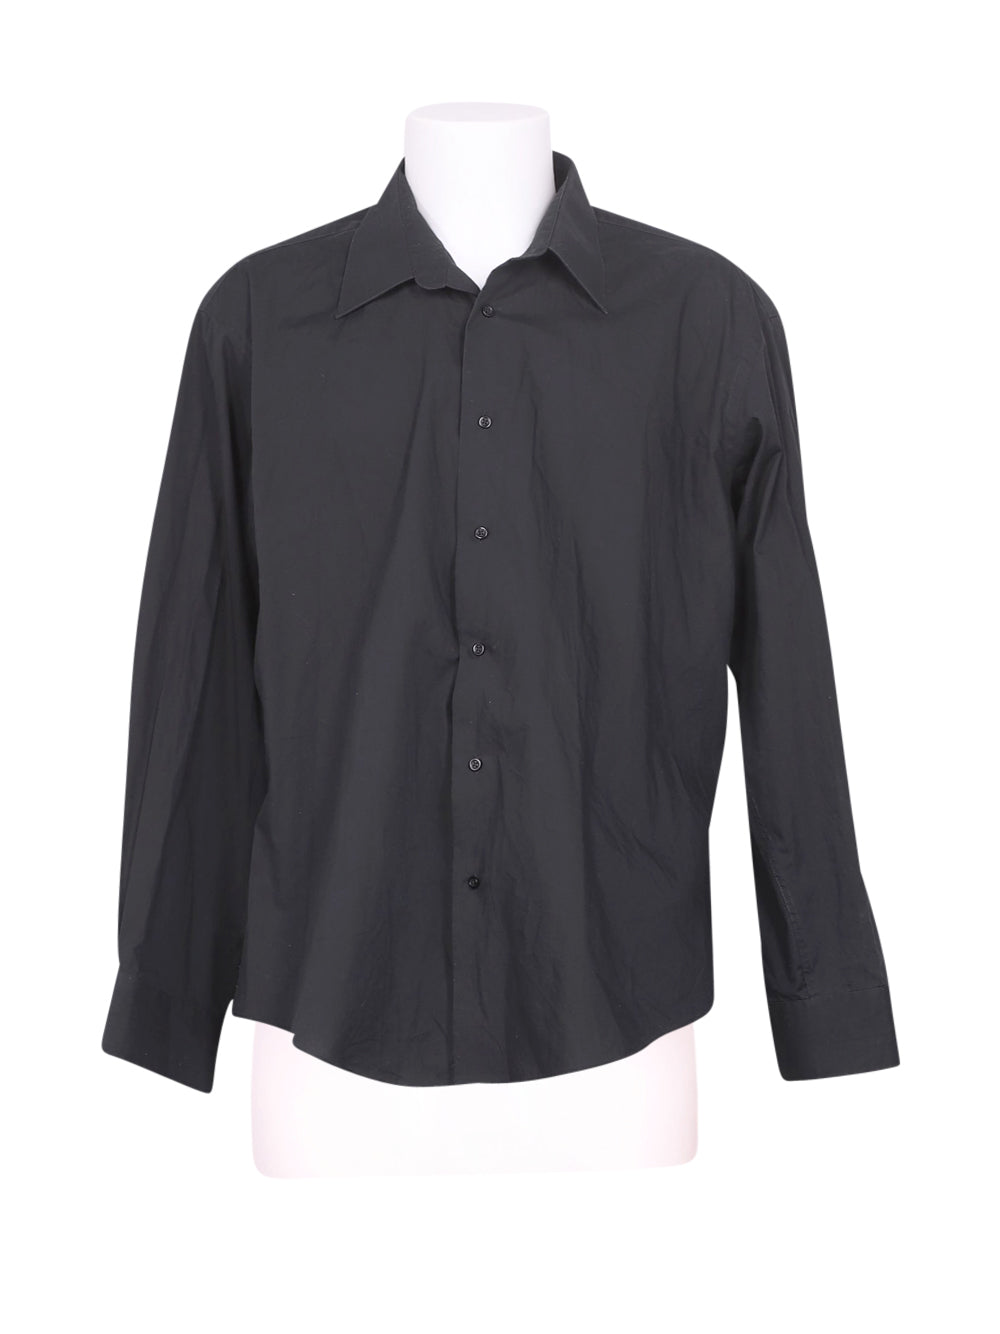 Front photo of Preloved delaveine collection Black Man's shirt - size 40/L